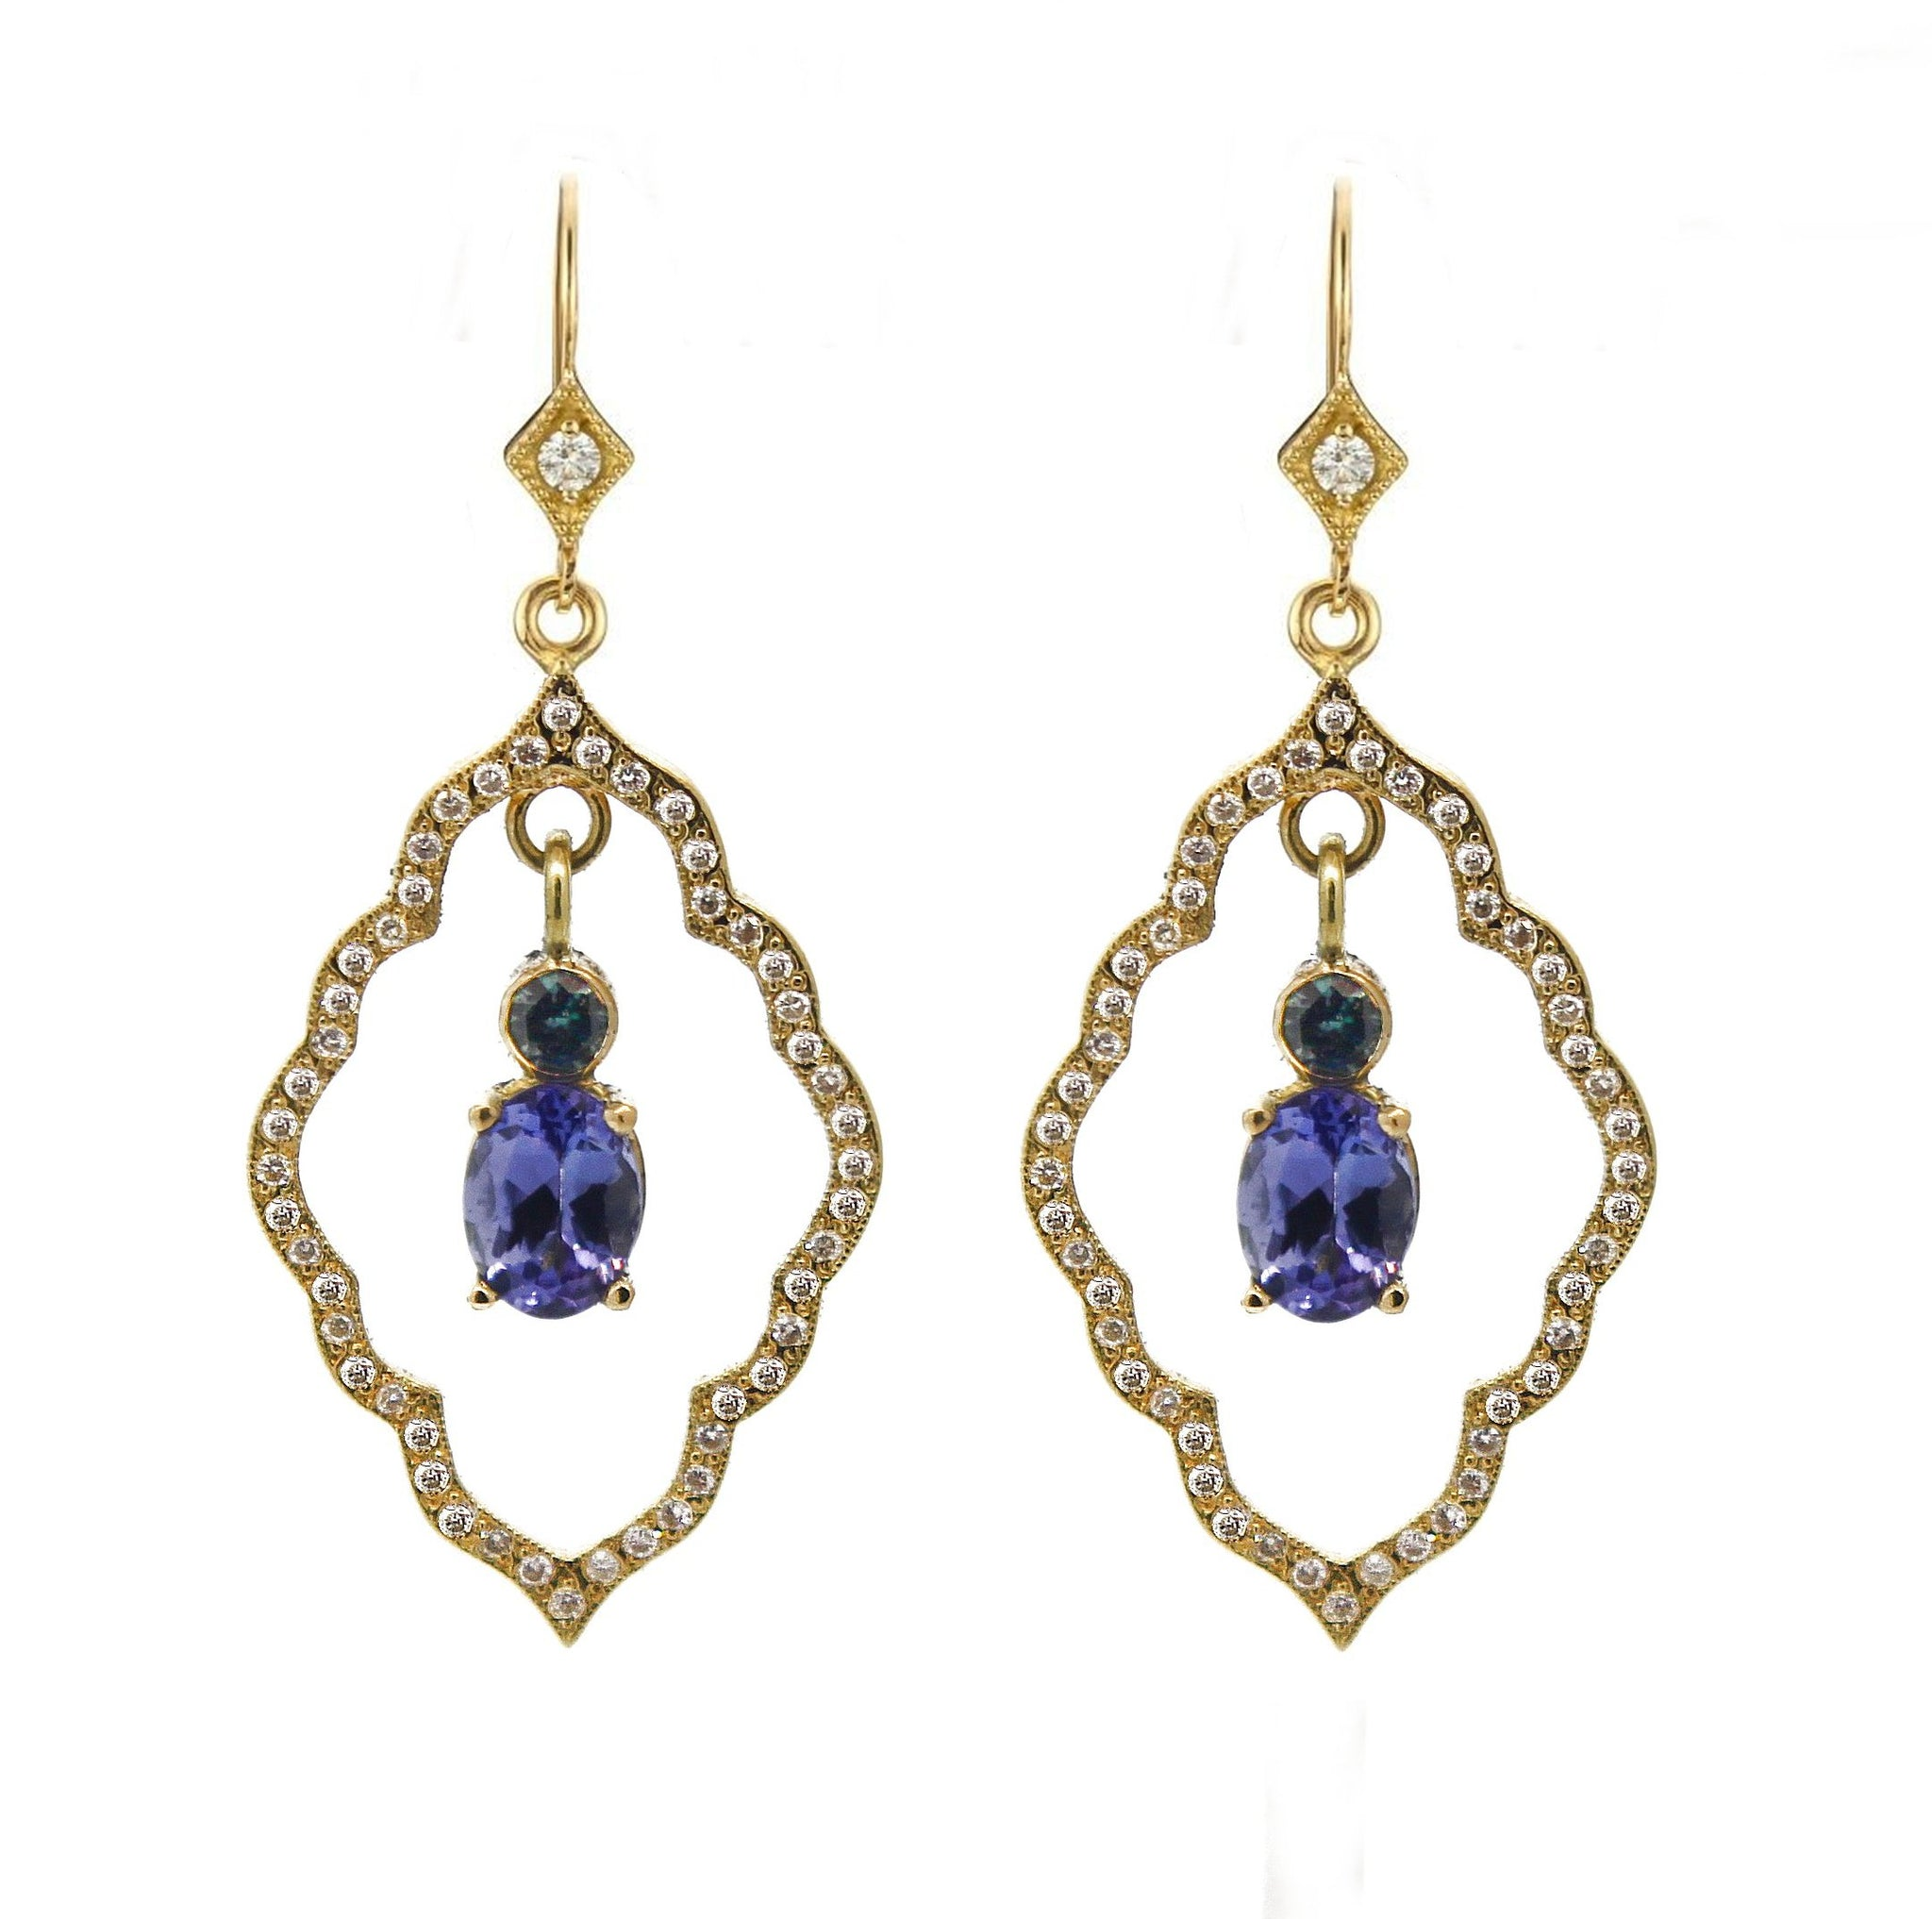 tanzanite earrings o exclusive drop moda m operandi pin hueb and